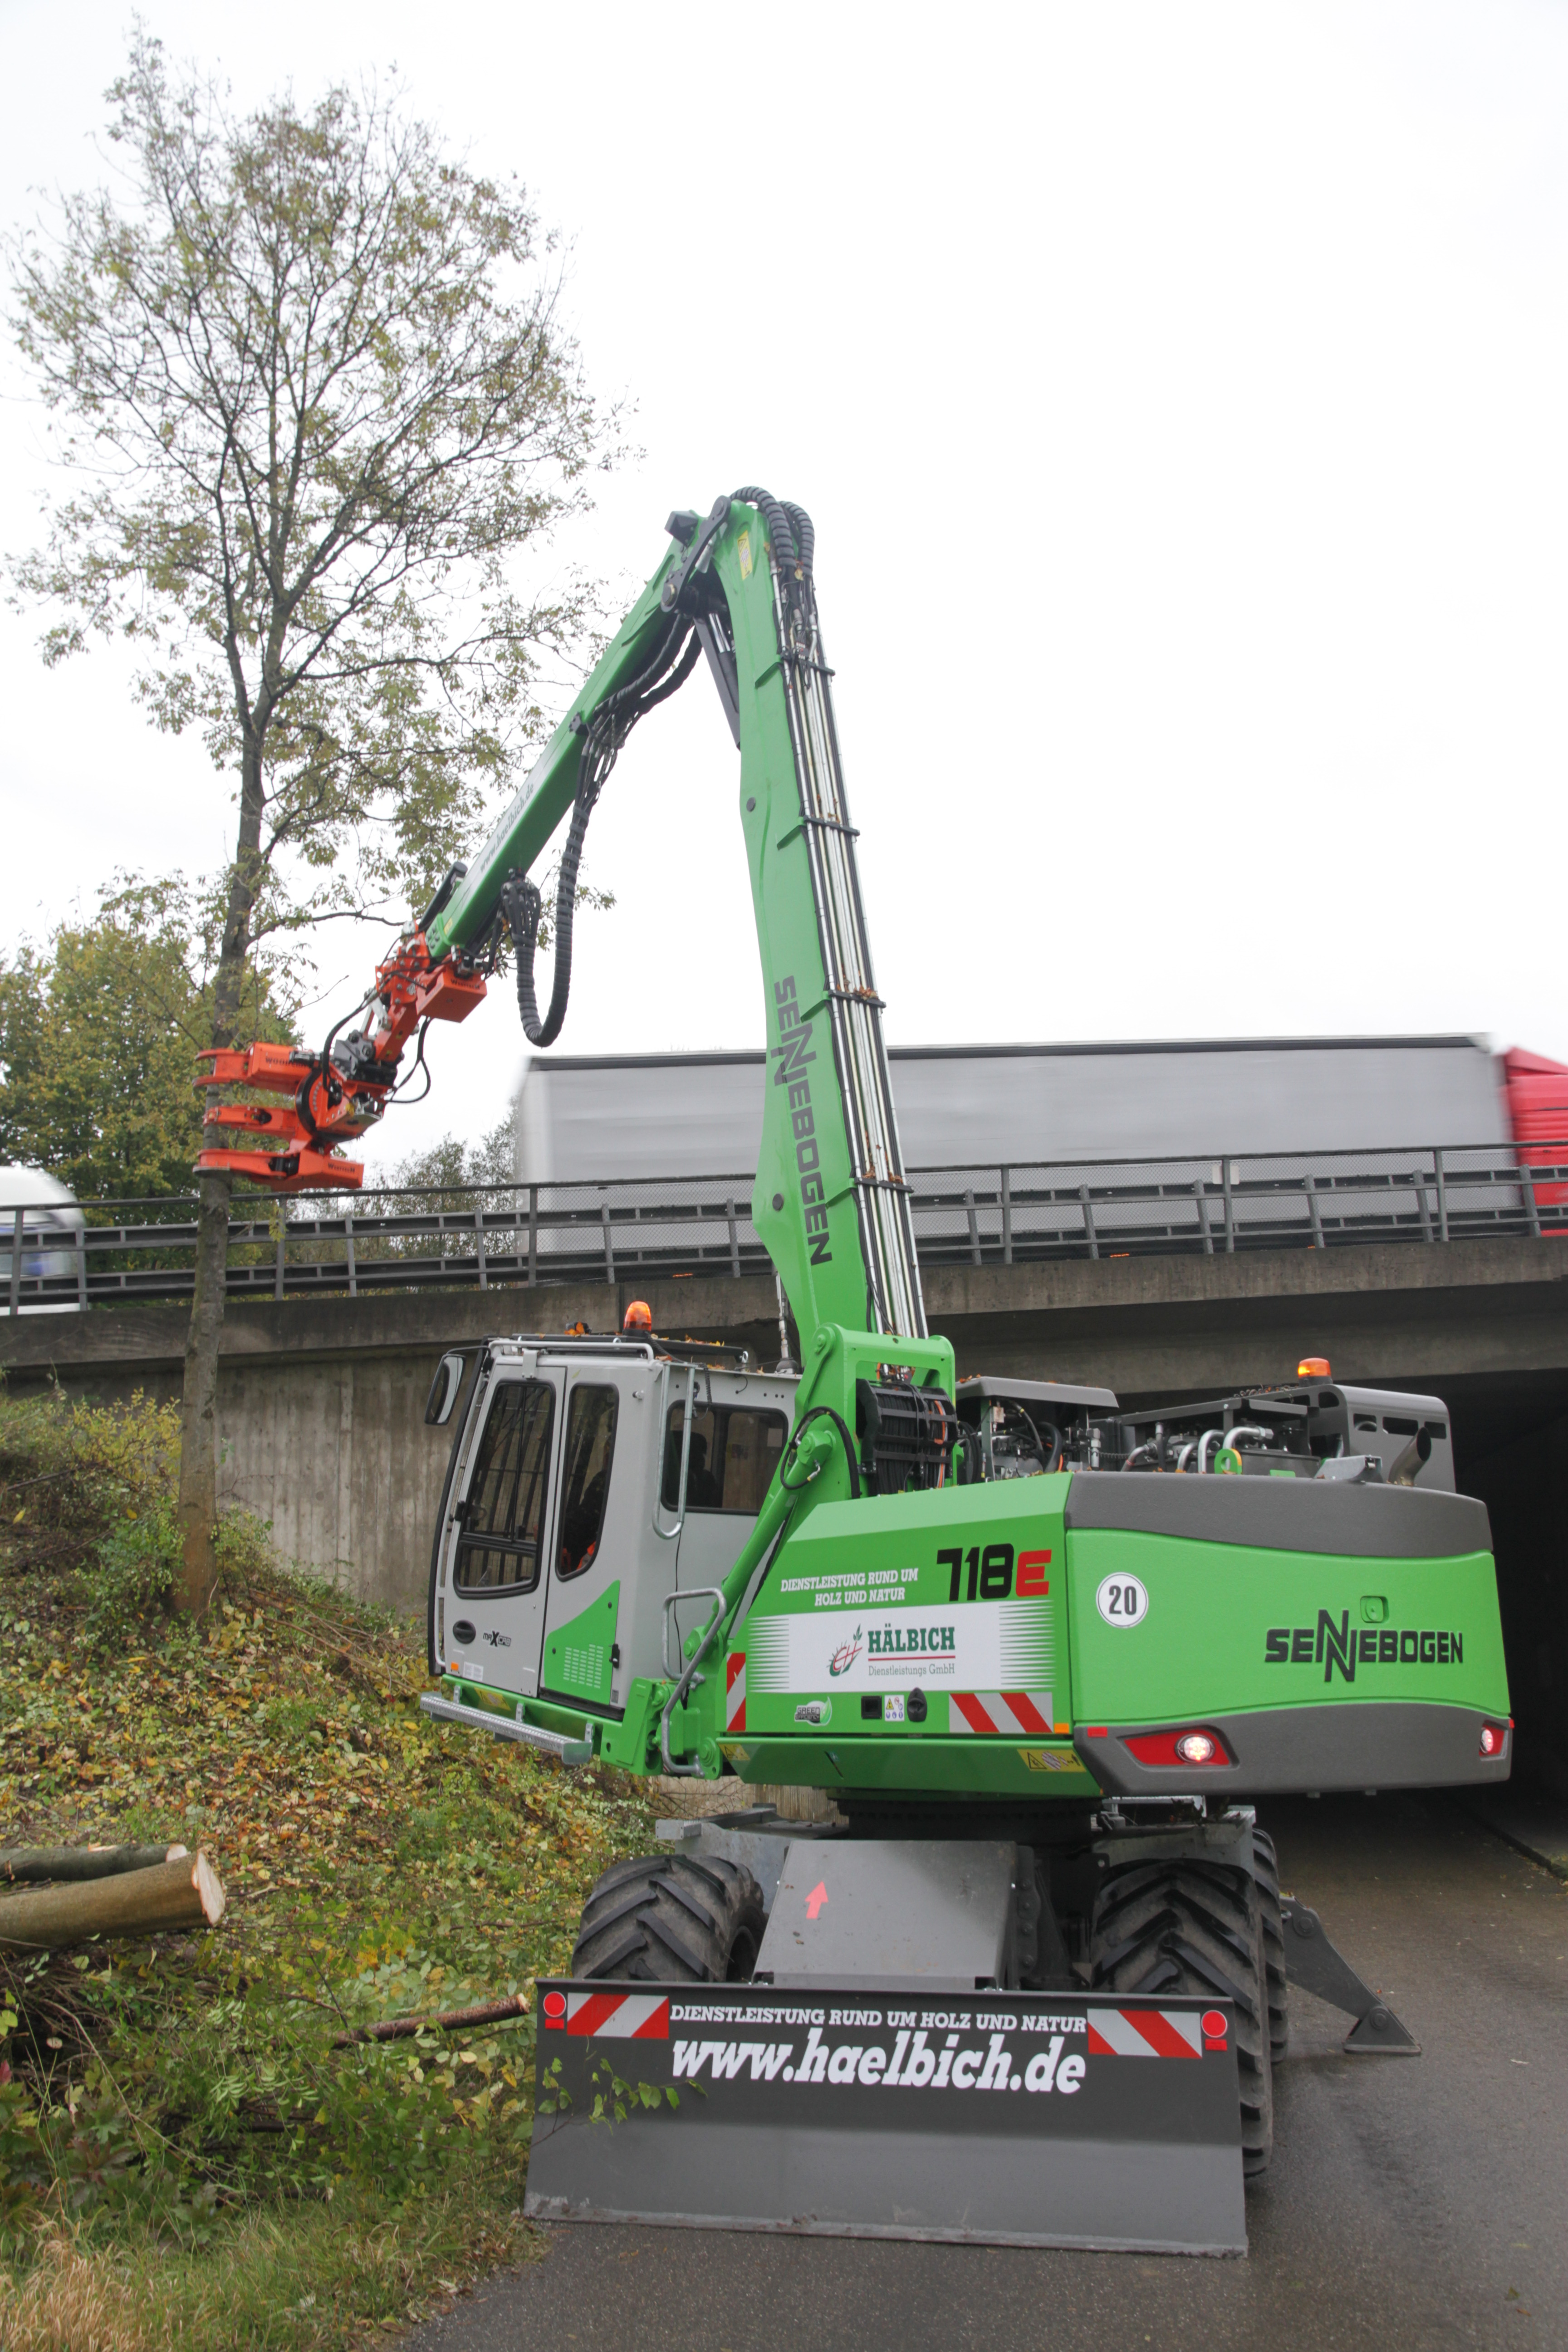 Hälbich Dienstleistungs GmbH uses a SENNEBOGEN 718 E-series with Westtech Woodcracker cutter head to clear embankments along autobahn A8.